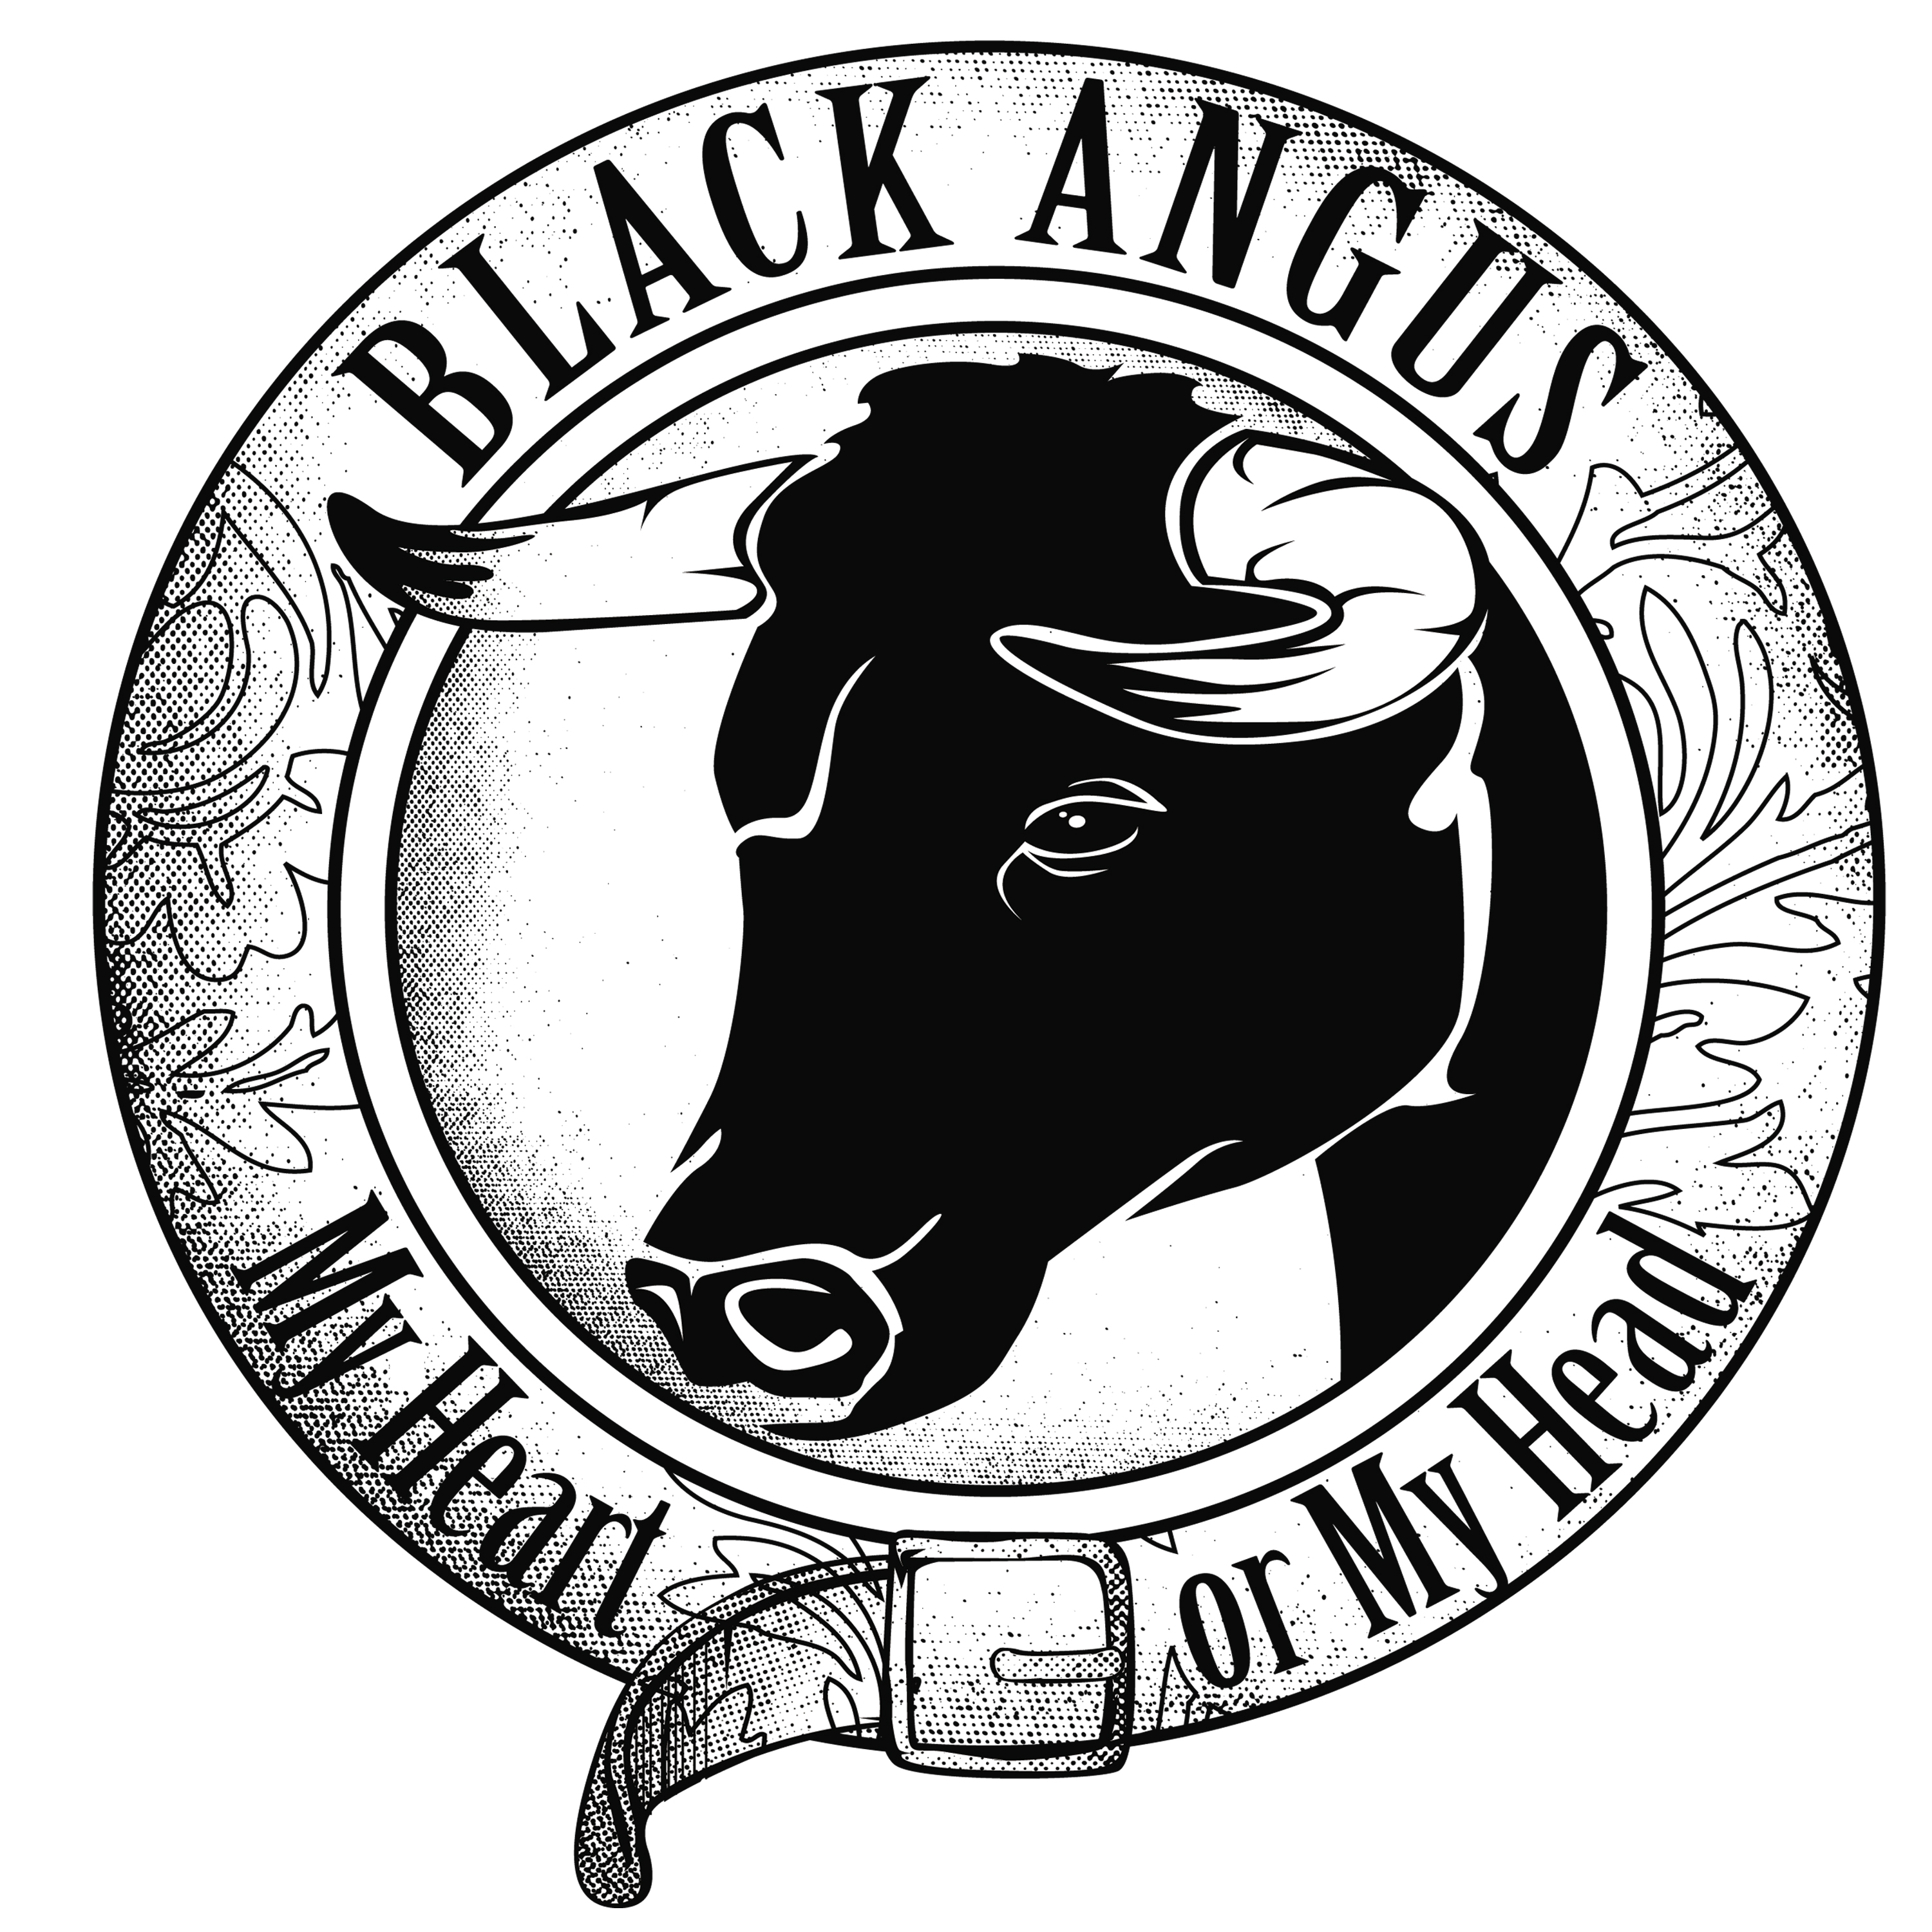 3000x3000 Easy To Remember By Black Angus